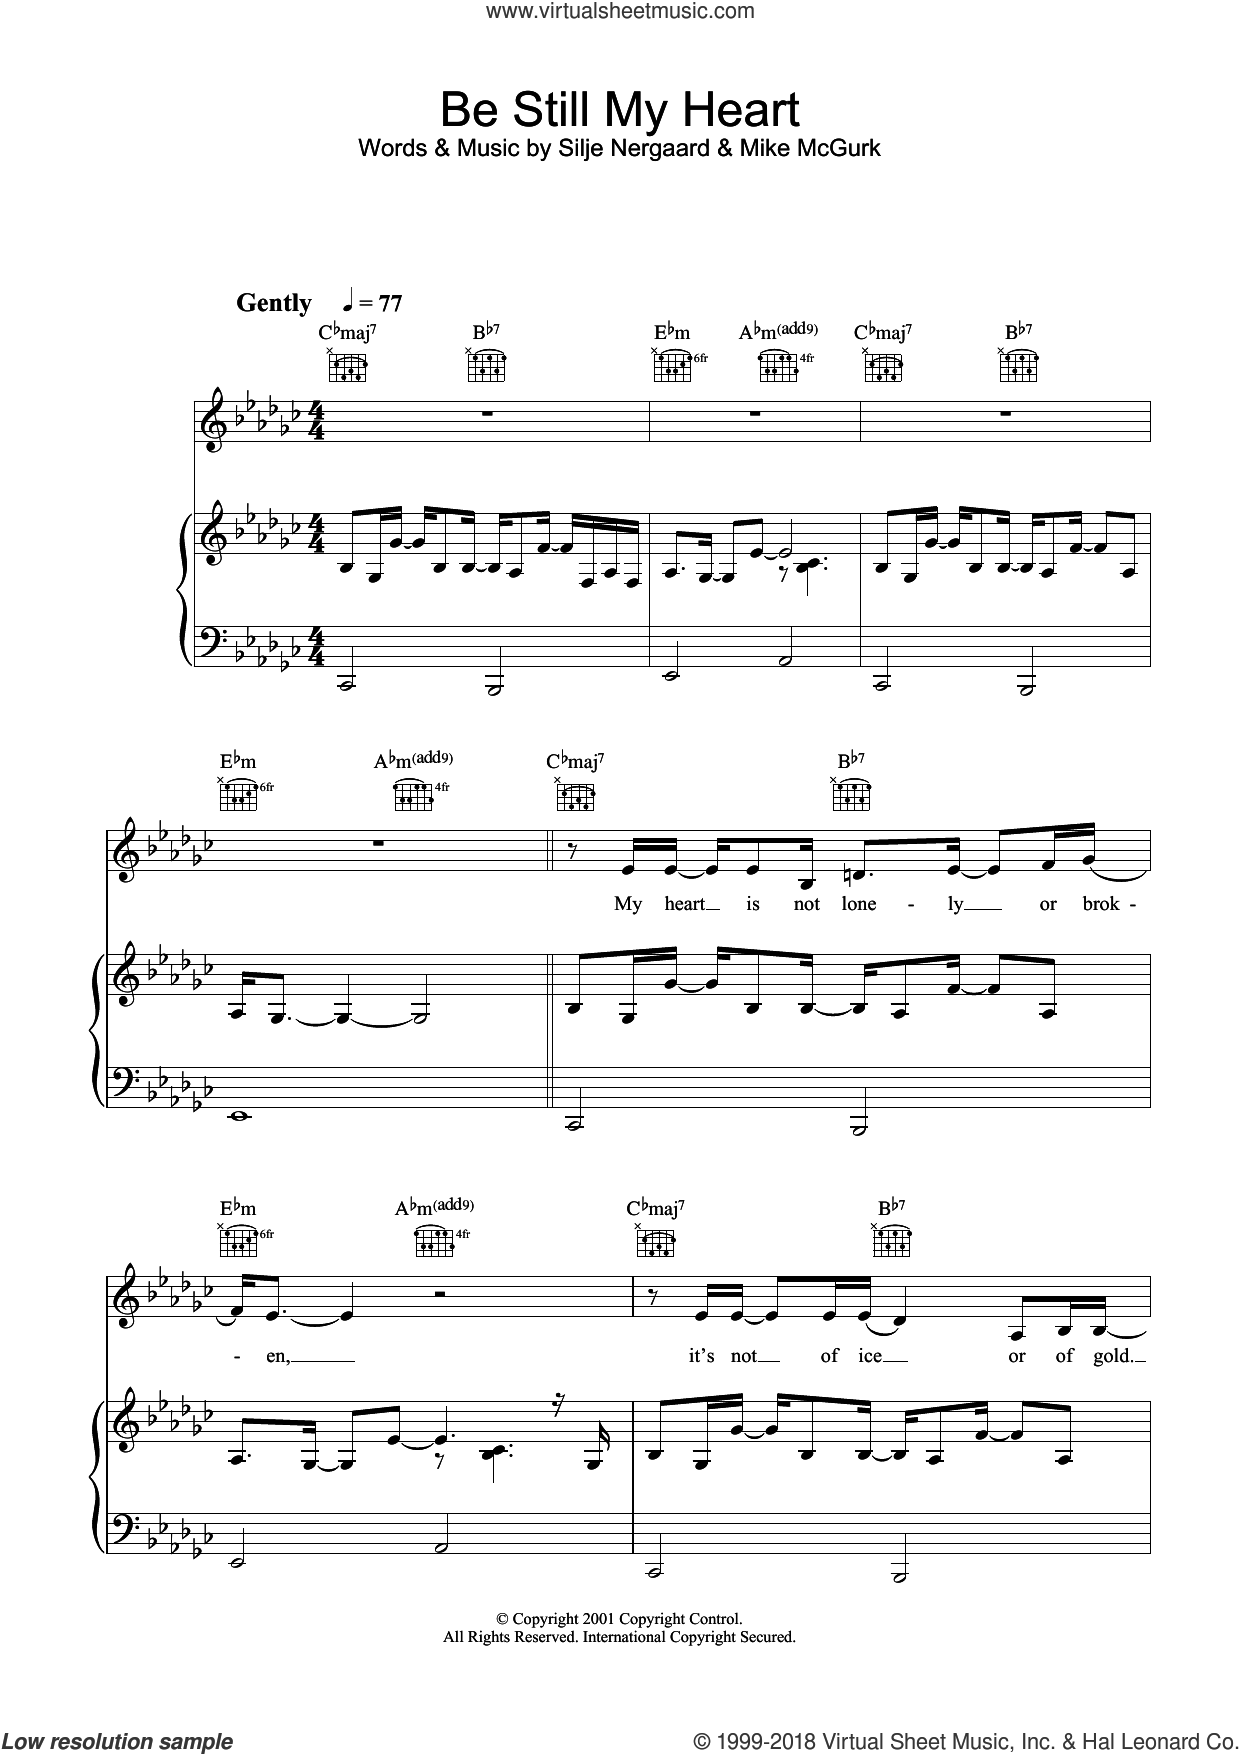 Be Still My Heart sheet music for voice, piano or guitar by Silje Nergaard and Mike McGurk, intermediate skill level